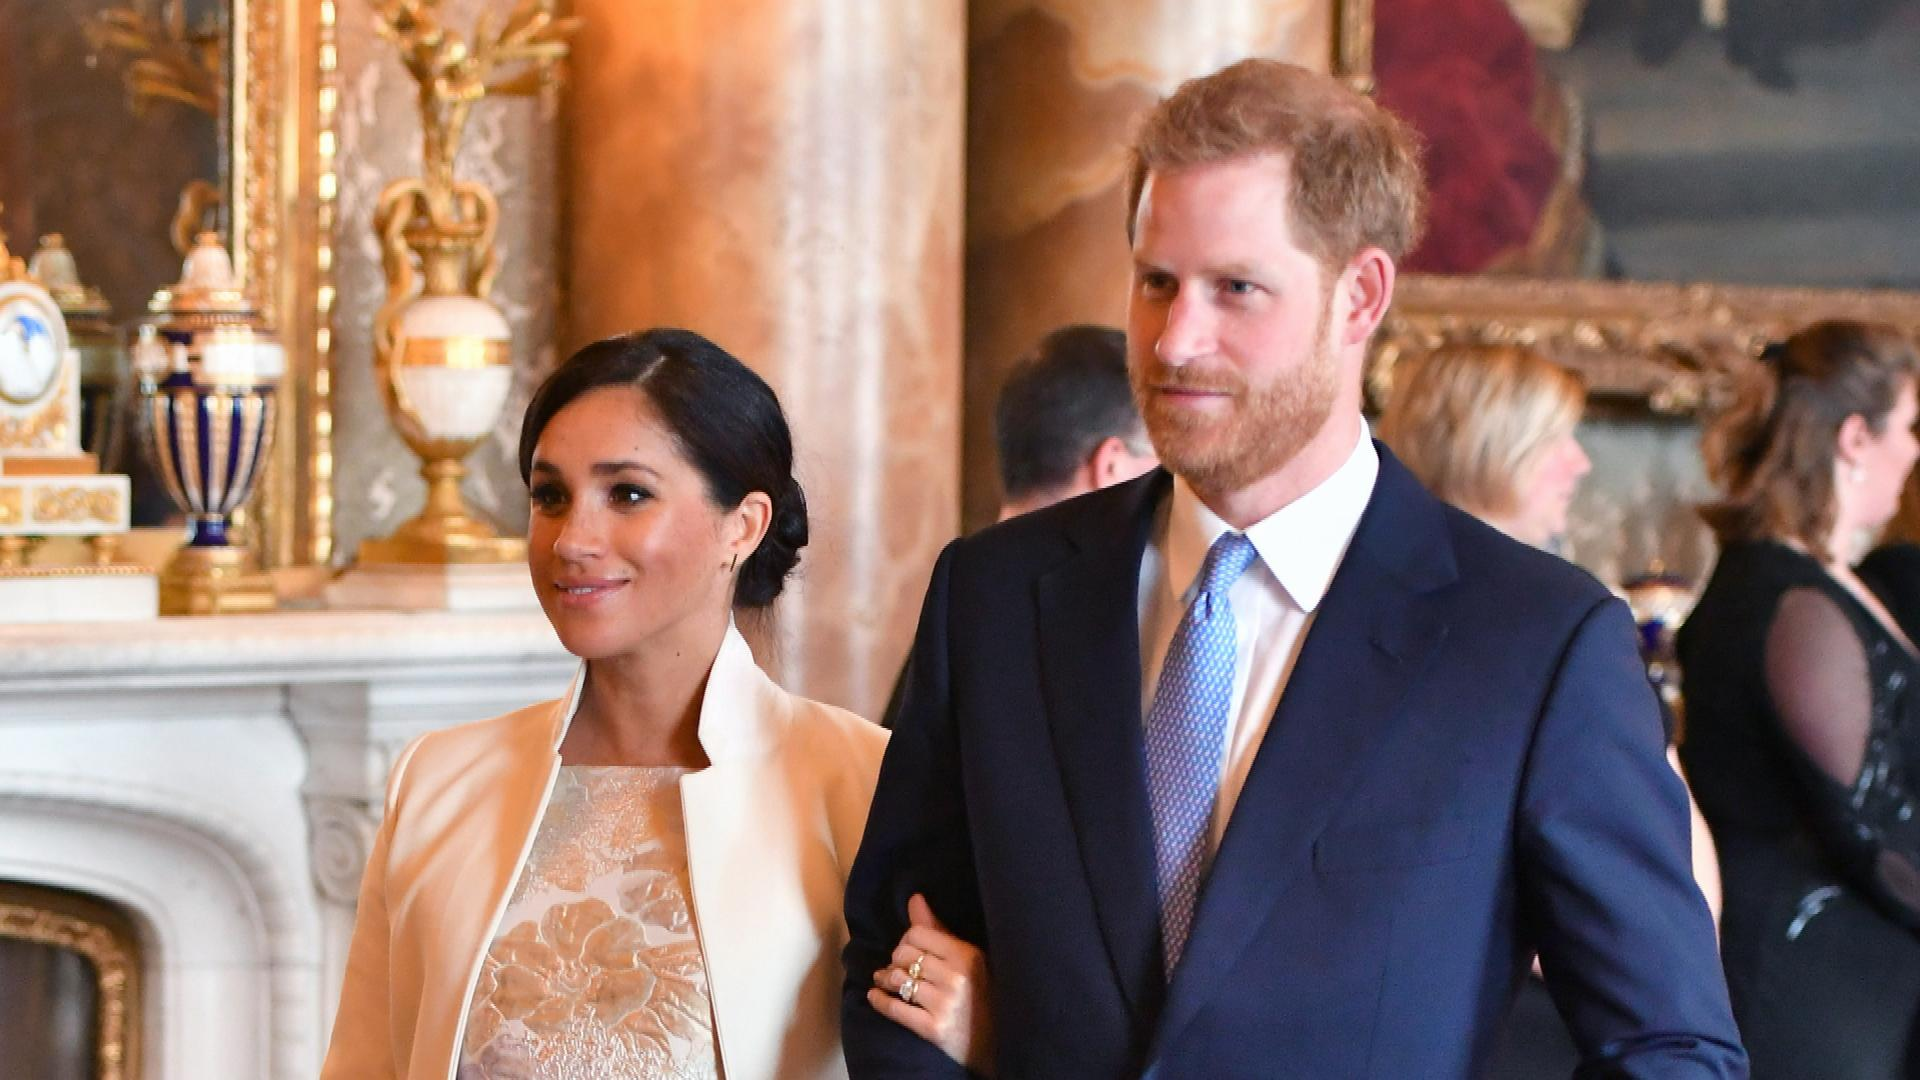 prince-harry-and-meghan-markle-to-reportedly-go-on-africa-tour-with-their-baby-details